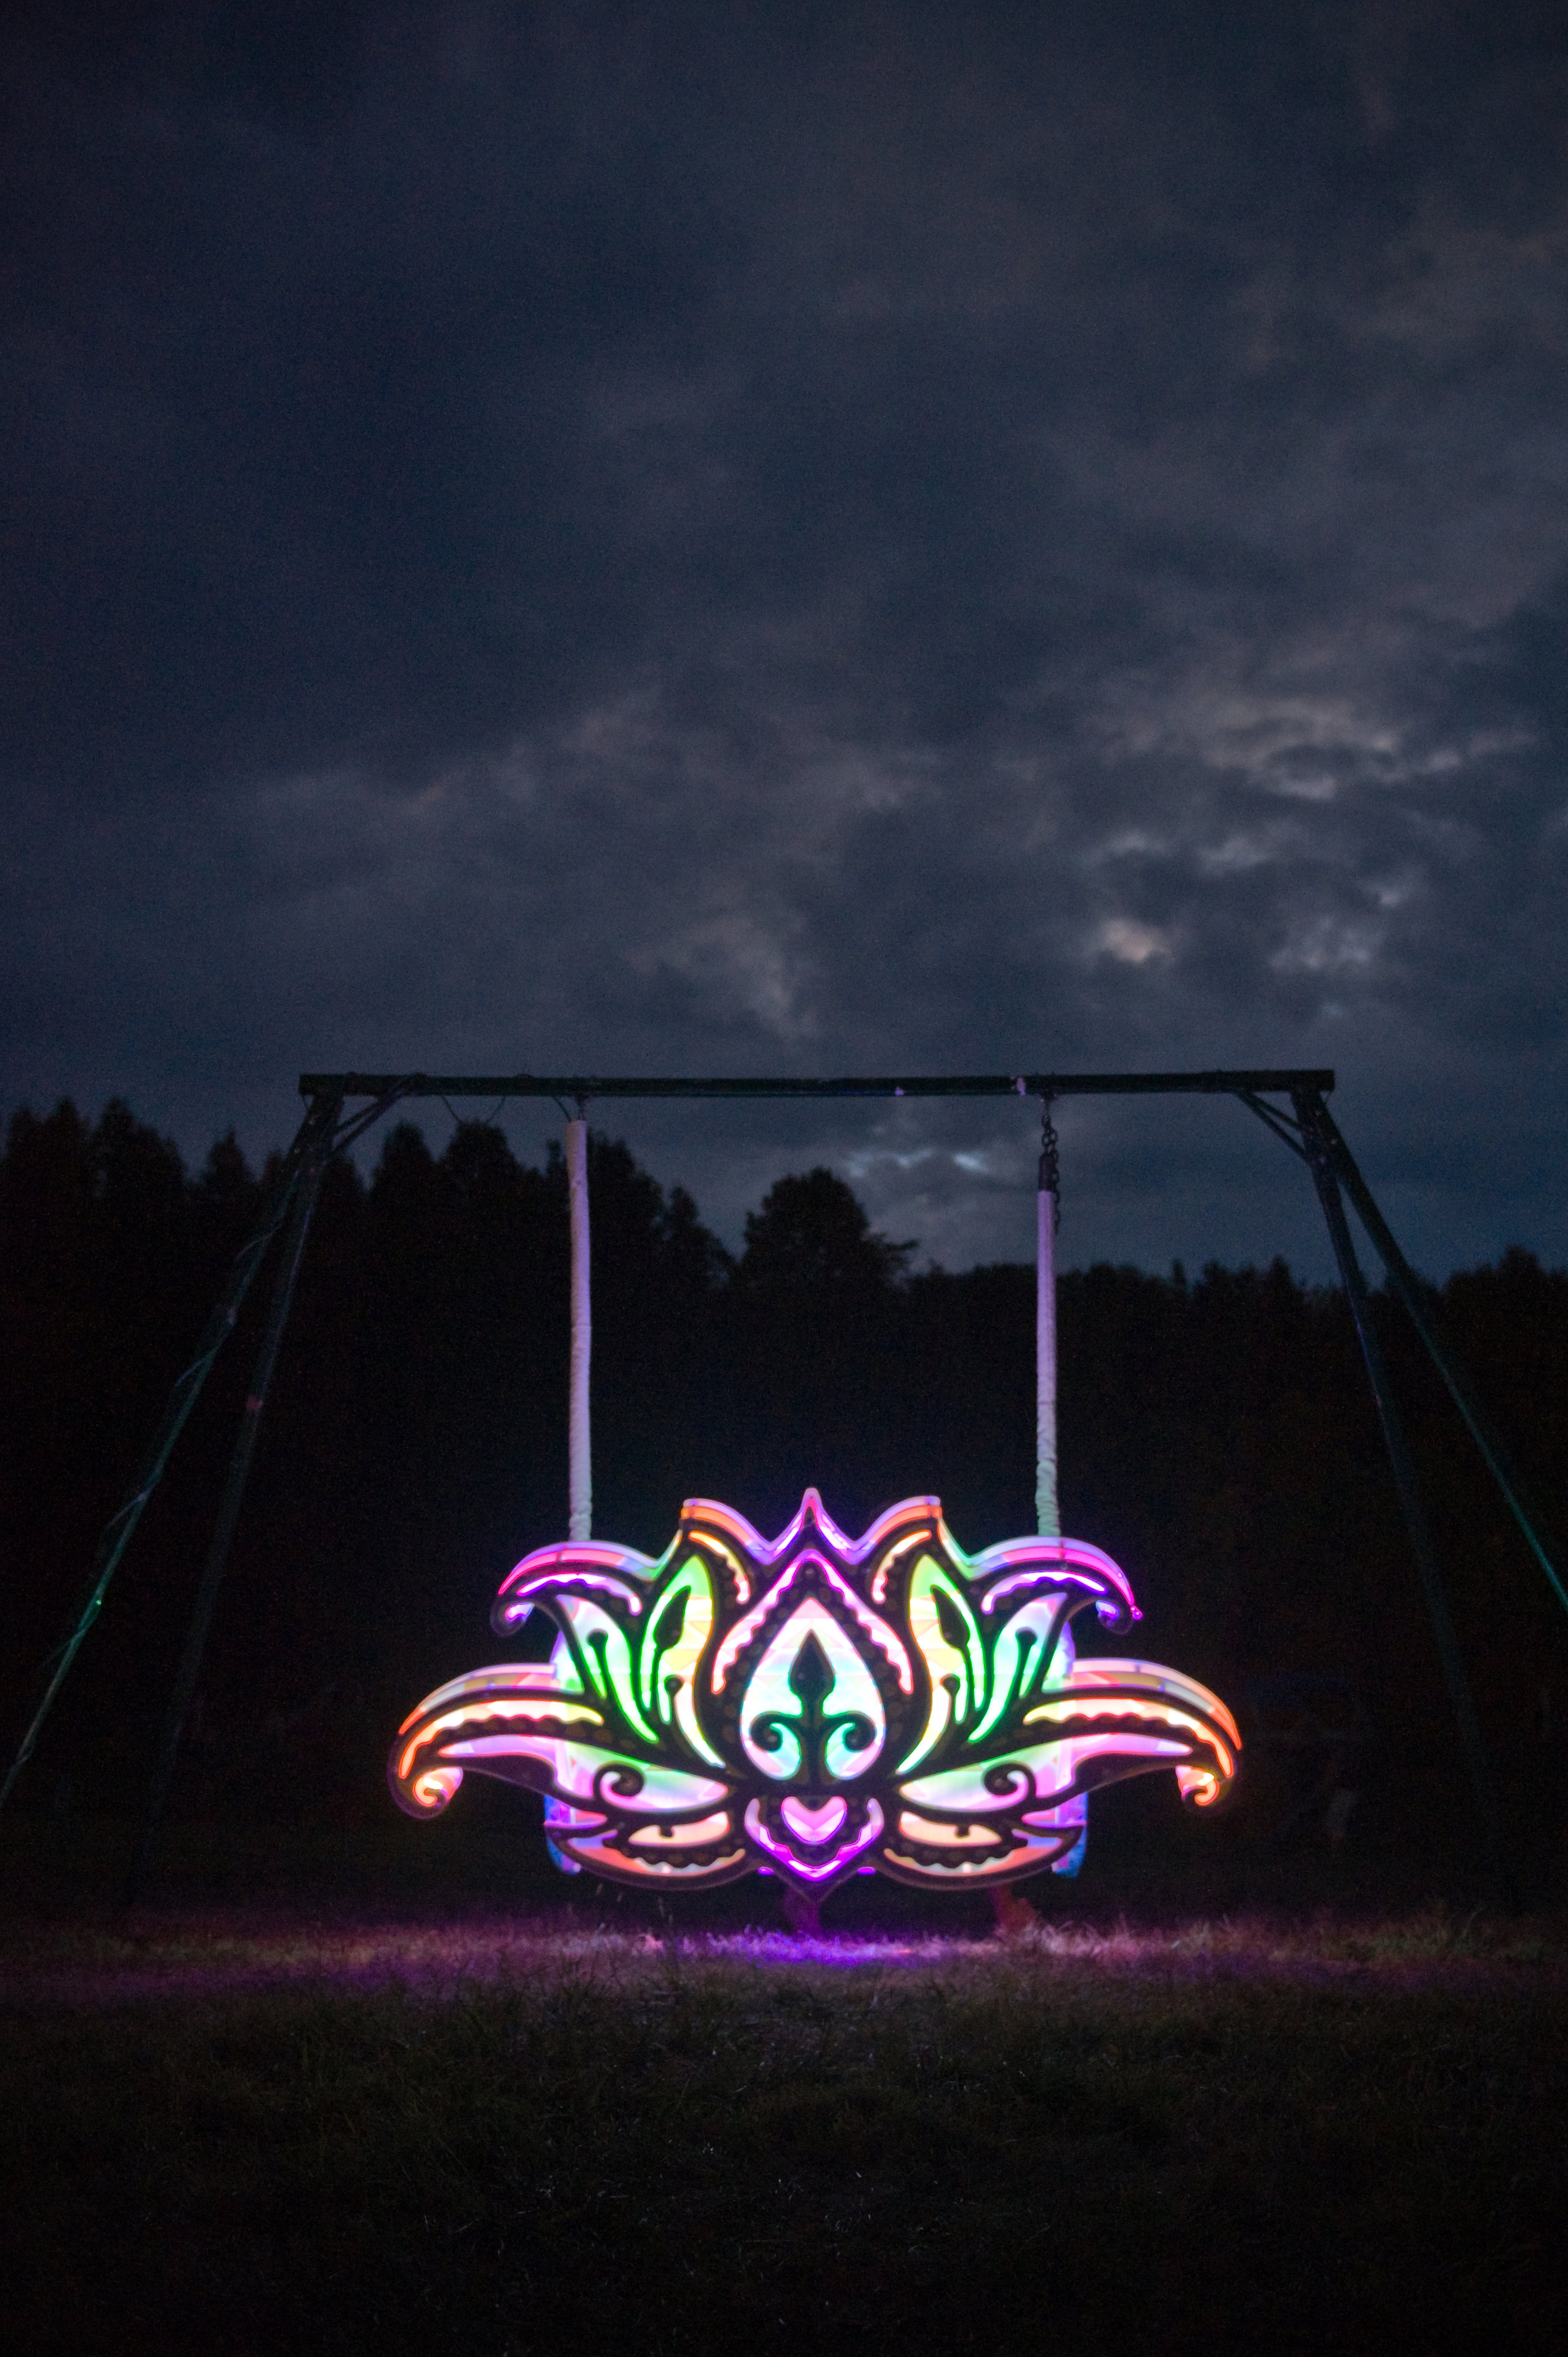 When you go next year, be sure to look for cool, interactive artwork like this rainbow swing. Here you can listen to the music gently roll over your ears while you sway back and forth, staring at the sky...photo by  Michelle Waters.